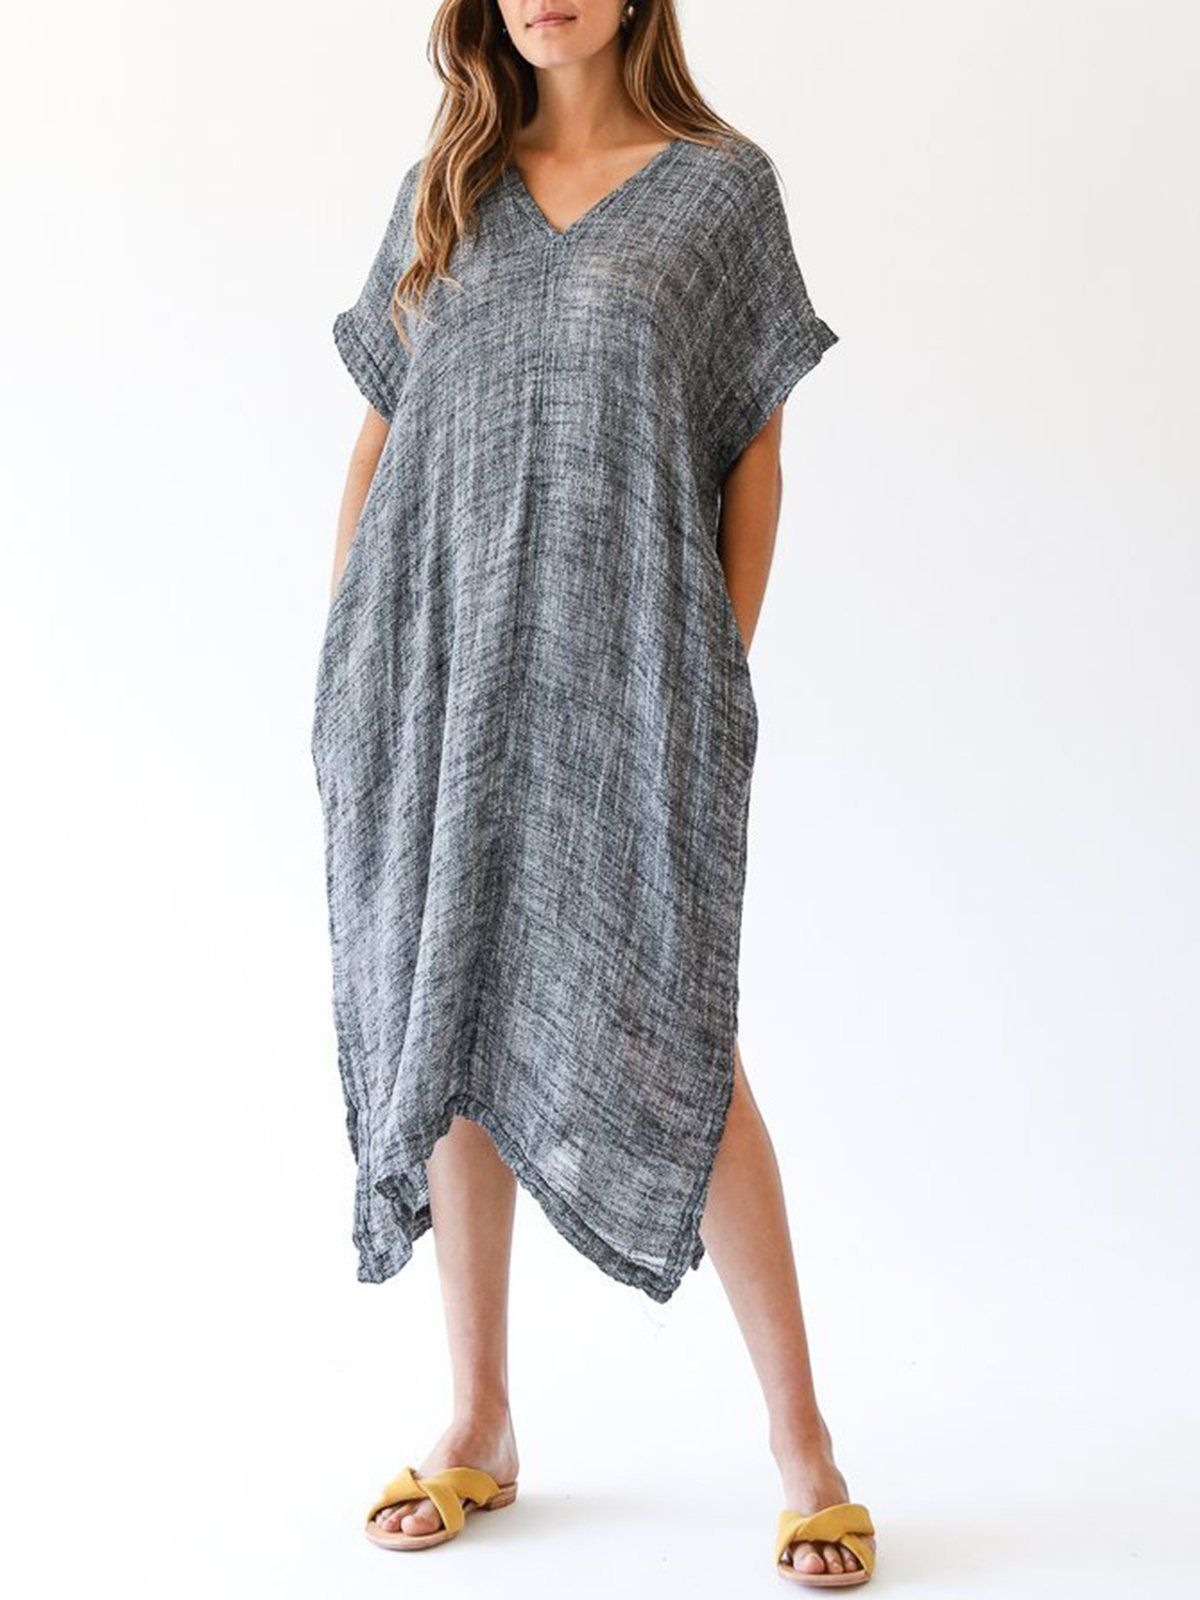 b147bcc5c2 Short Sleeve Casual Solid Shift Linen Dress – NORACORA | want in ...